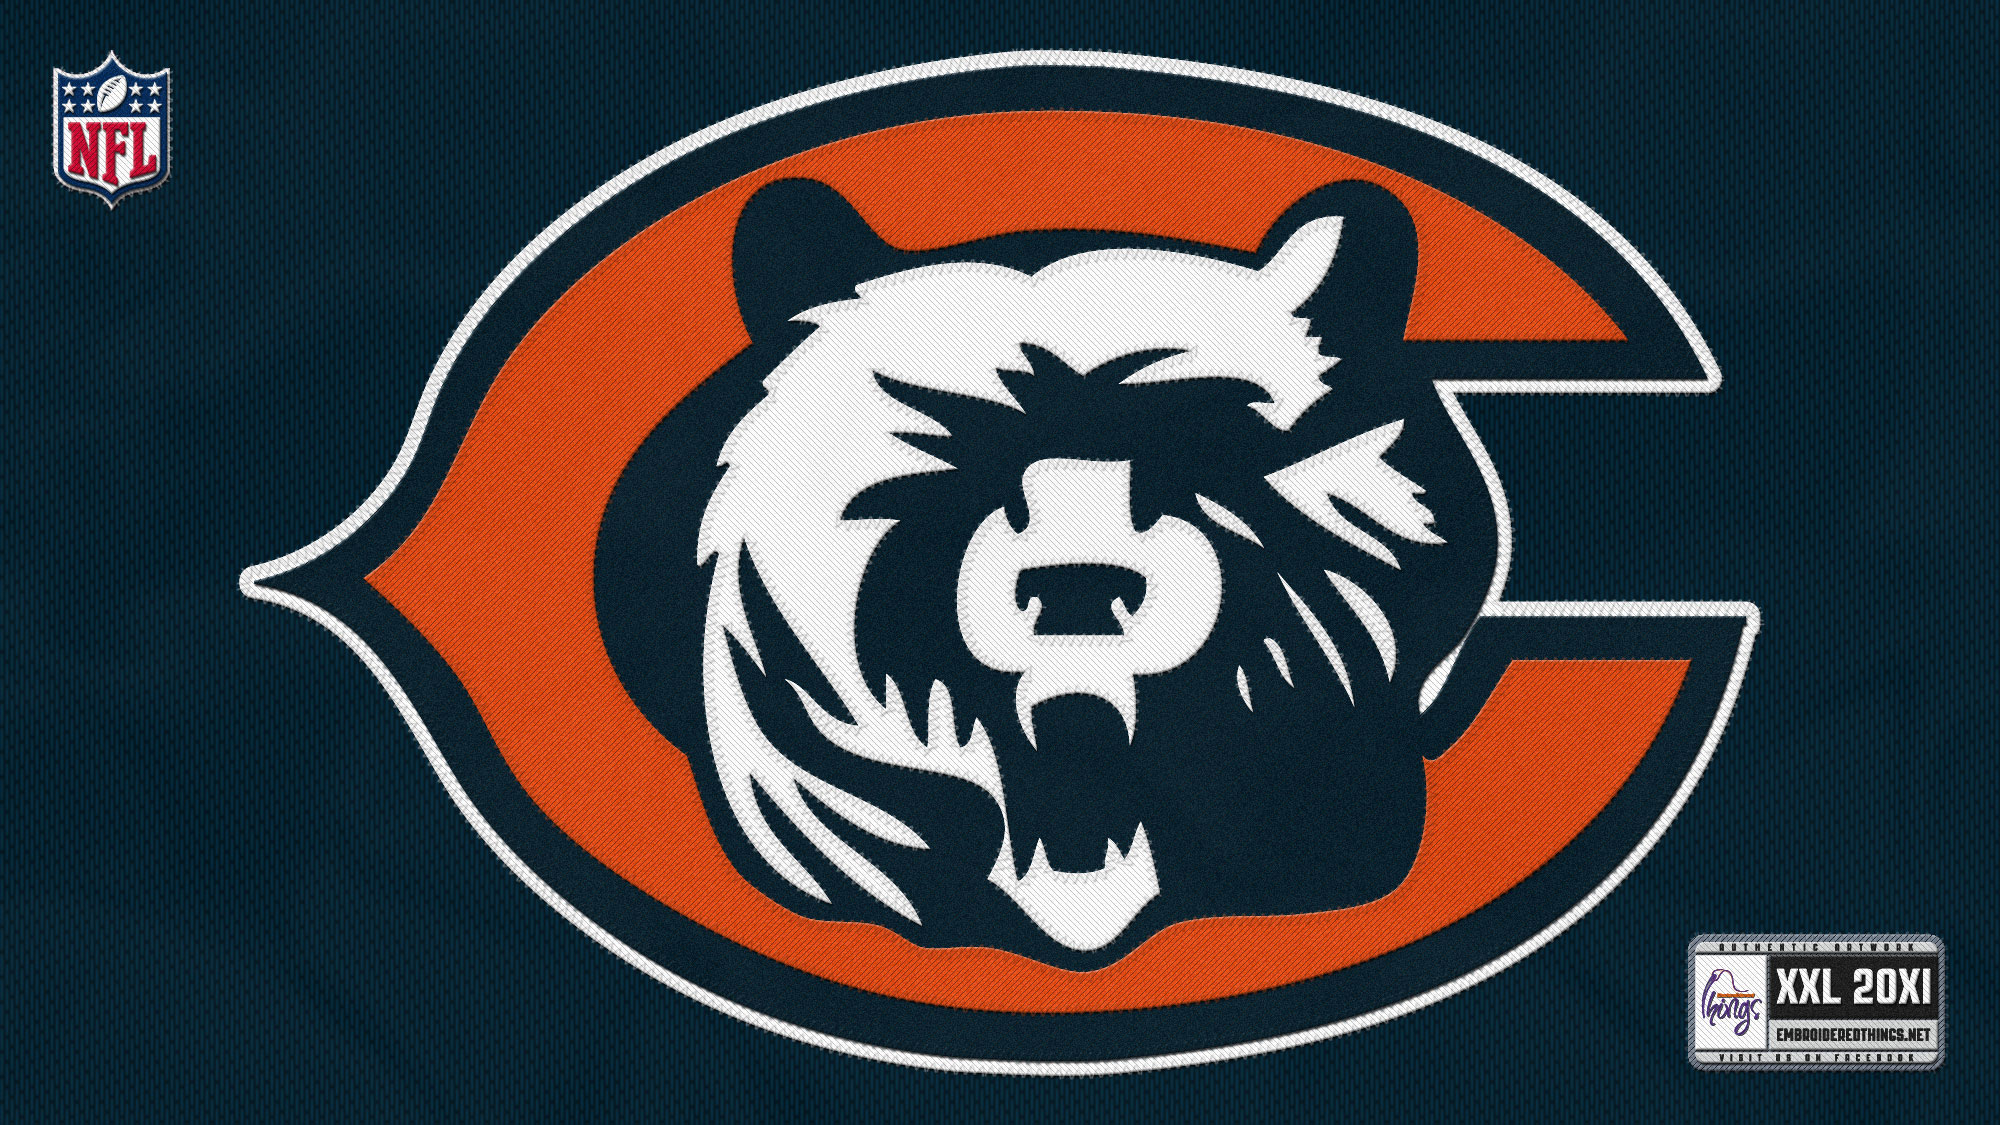 CHICAGO BEARS nfl football gk wallpaper 2000x1125 2000x1125